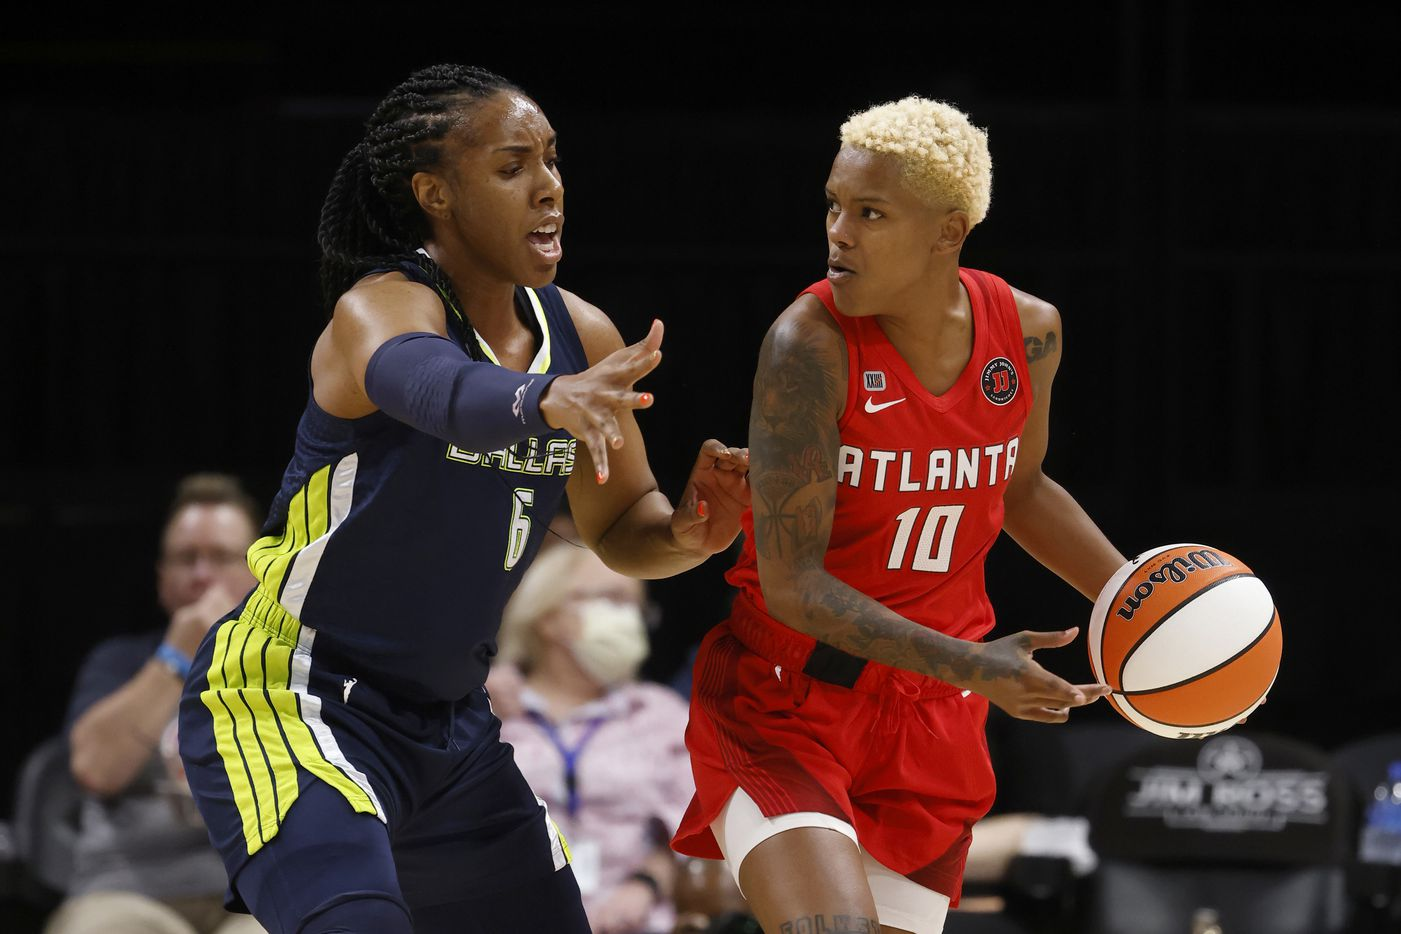 Dallas Wings forward Kayla Thornton (6) defends Atlanta Dream guard Courtney Williams (10) during the first half of their WNBA basketball game in Arlington, Texas on Sept. 2, 2021. (Michael Ainsworth/Special Contributor)